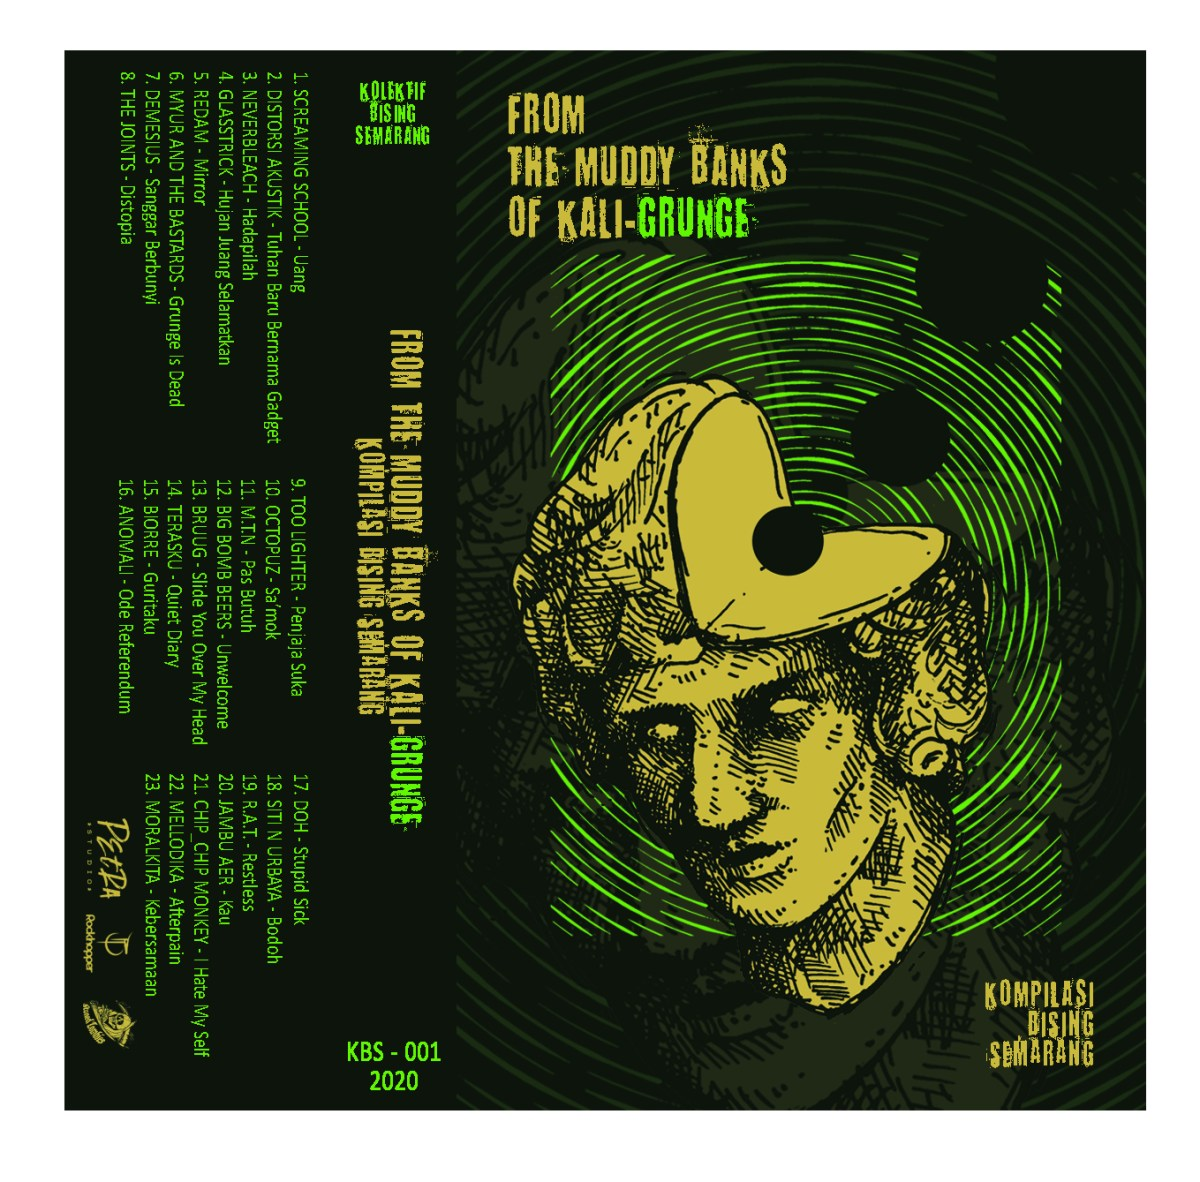 "Kompilasi bising dari Semarang ""From The Muddy Banks Of Kaligrunge"""